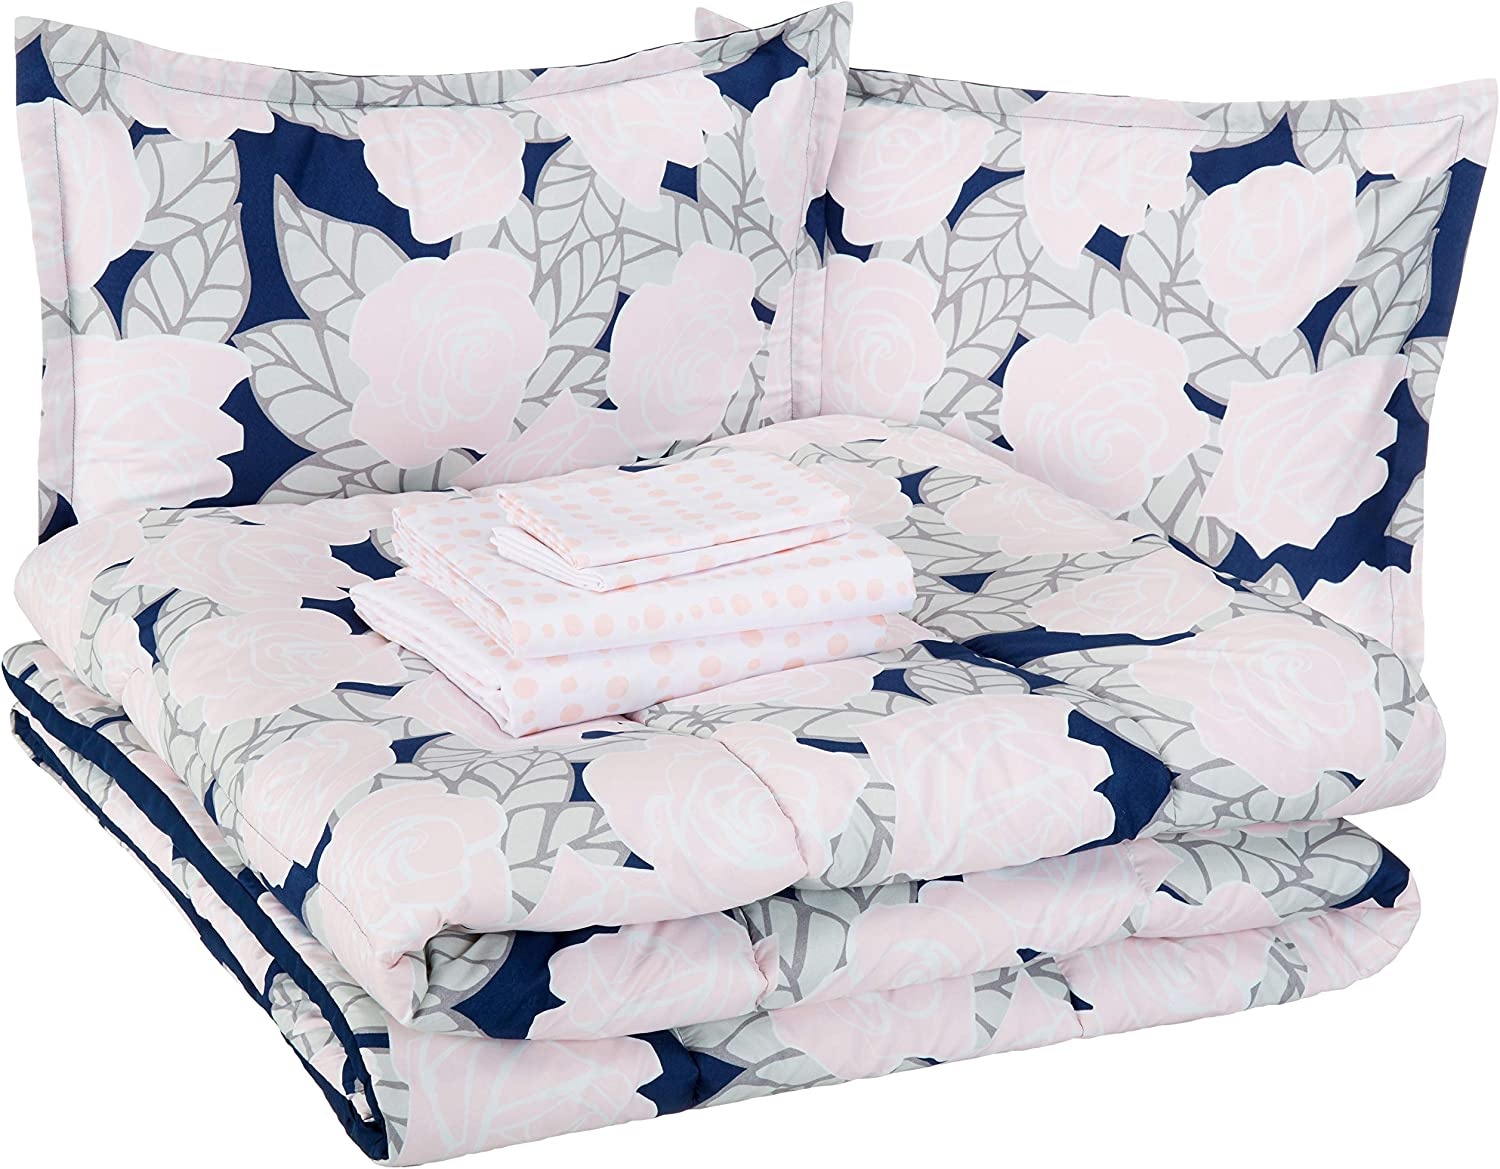 AmazonBasics Easy Care Super Soft Microfiber Kid's Bed-in-a-Bag Bedding Set - Full / Queen, Pink Flowers